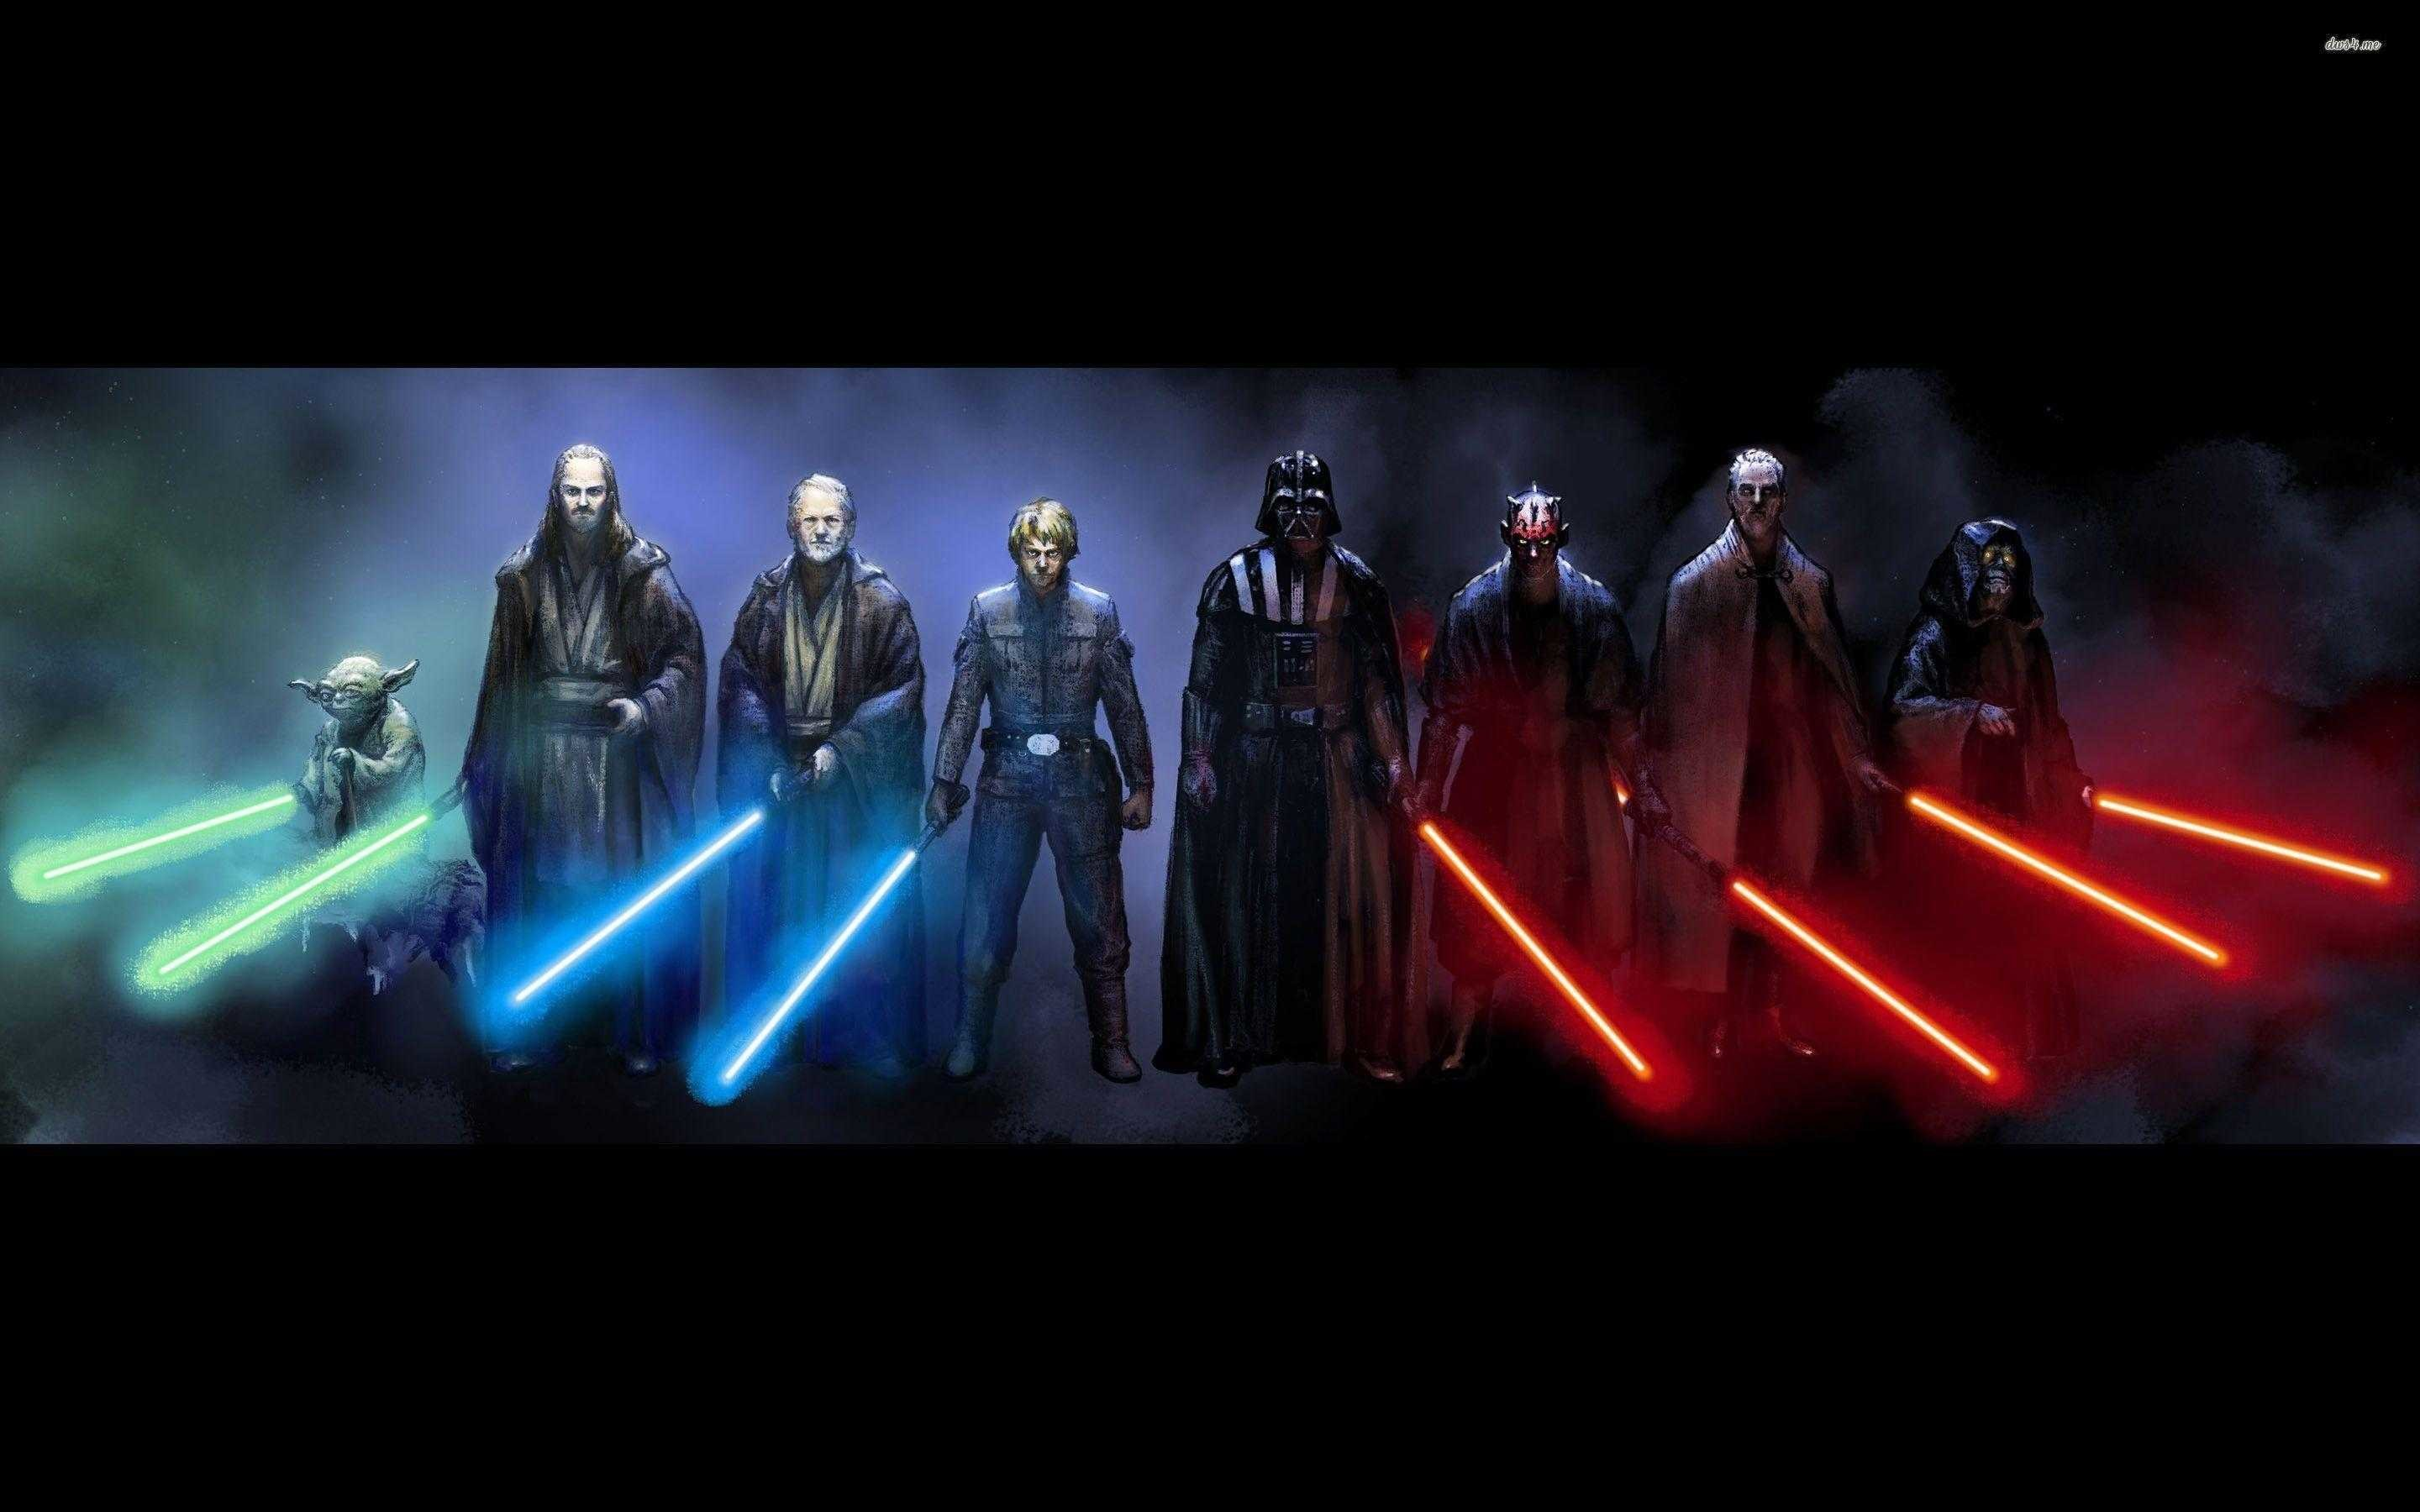 Free Download 70 Hd Jedi Wallpapers On Wallpaperplay 2880x1800 For Your Desktop Mobile Tablet Explore 29 Star Wars Episode 9 Wallpapers Star Wars Episode 9 Wallpapers Star Wars Episode 1 Wallpaper Star Wars Episode 3 Wallpapers